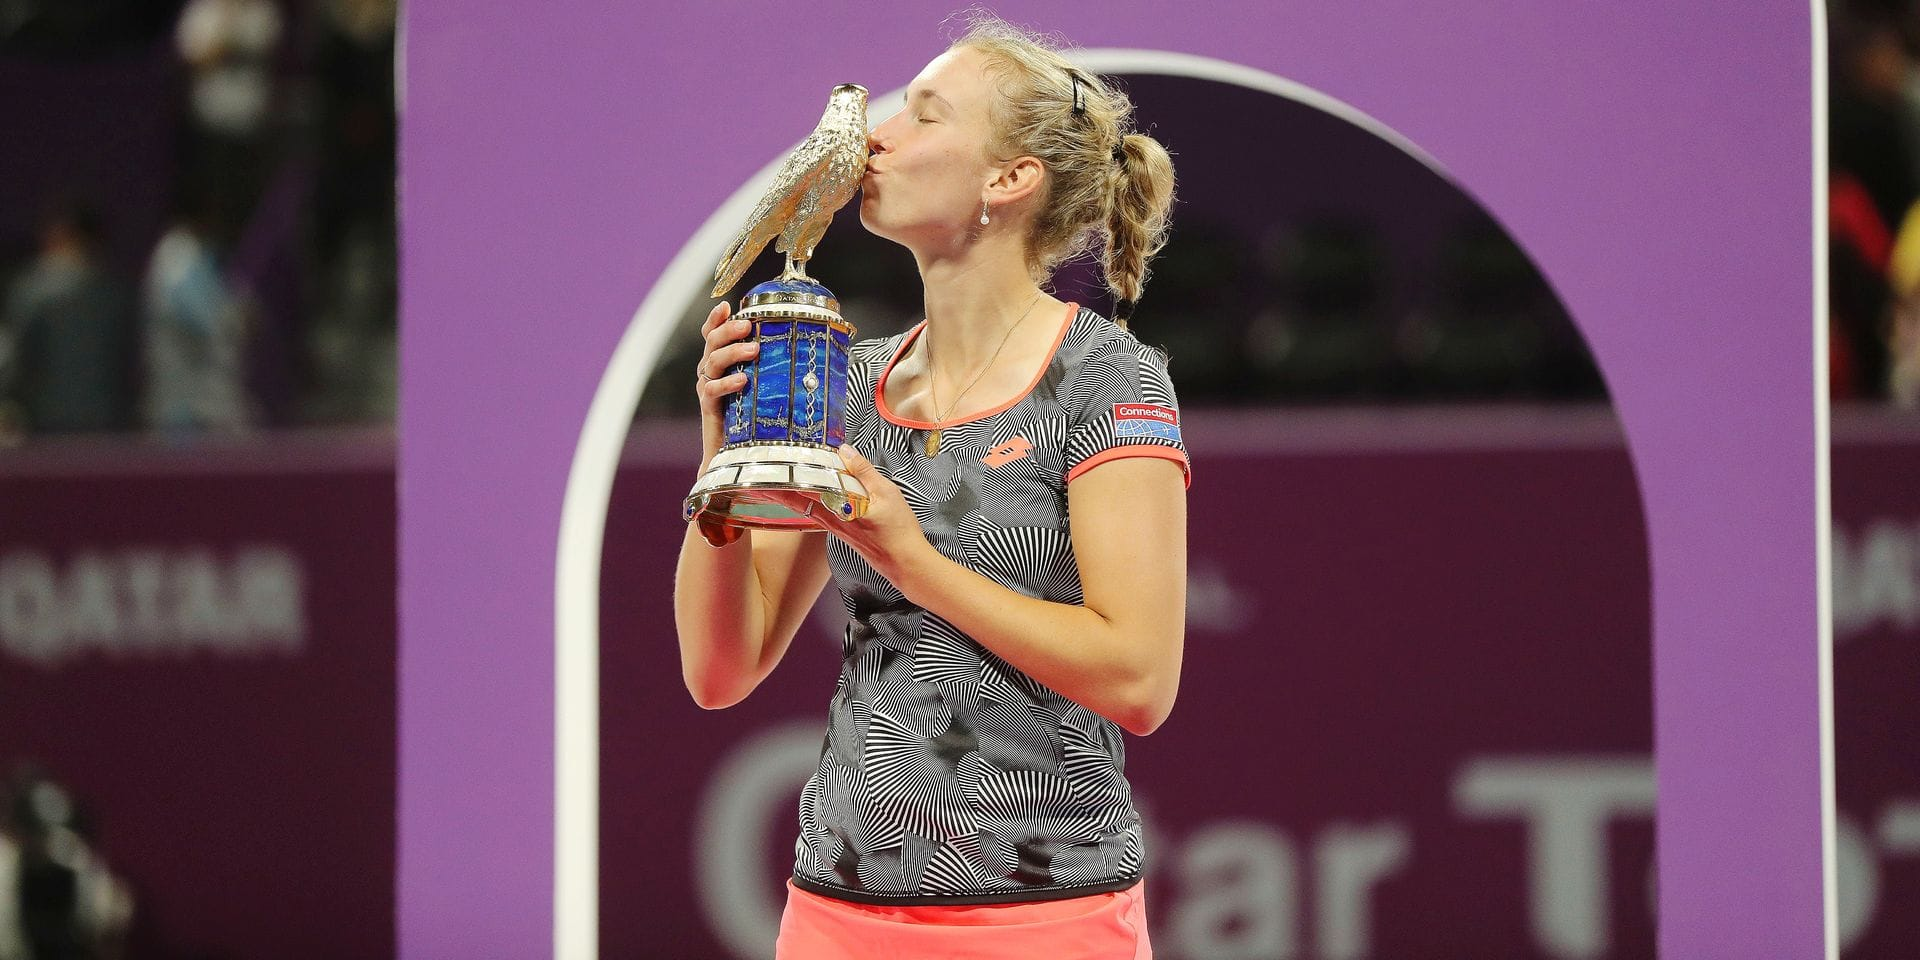 Belgian Elise Mertens kisses the trophy after her victory over Romanian Simona Halep in their WTA Qatar Open final tennis match in Doha on February 16, 2019. (Photo by KARIM JAAFAR / AFP)